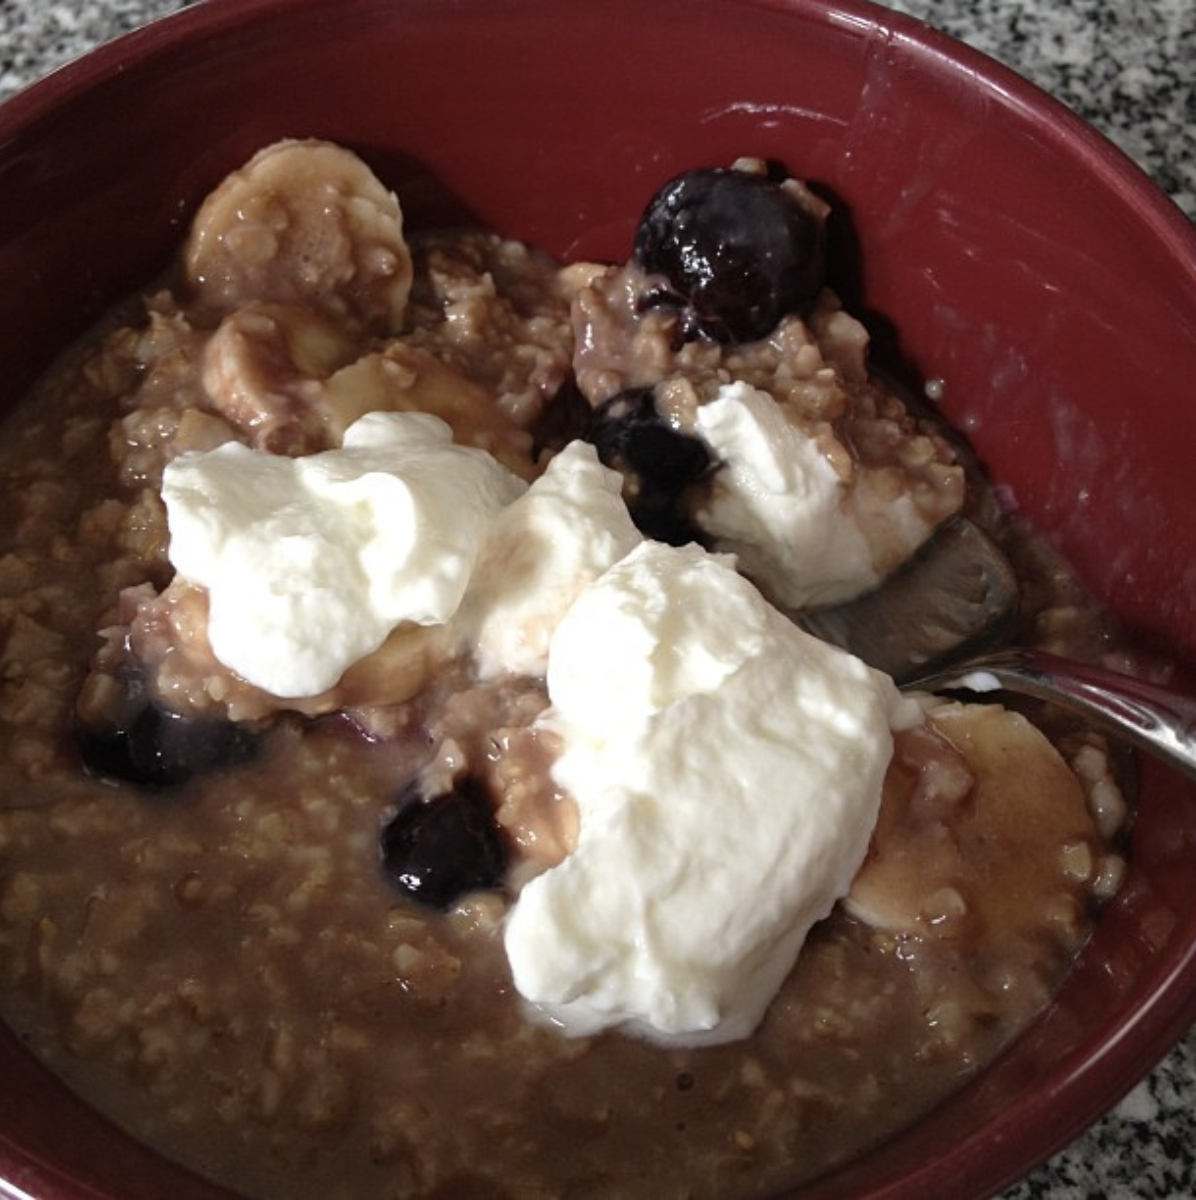 How To Make Oats Taste Good Without Sugar